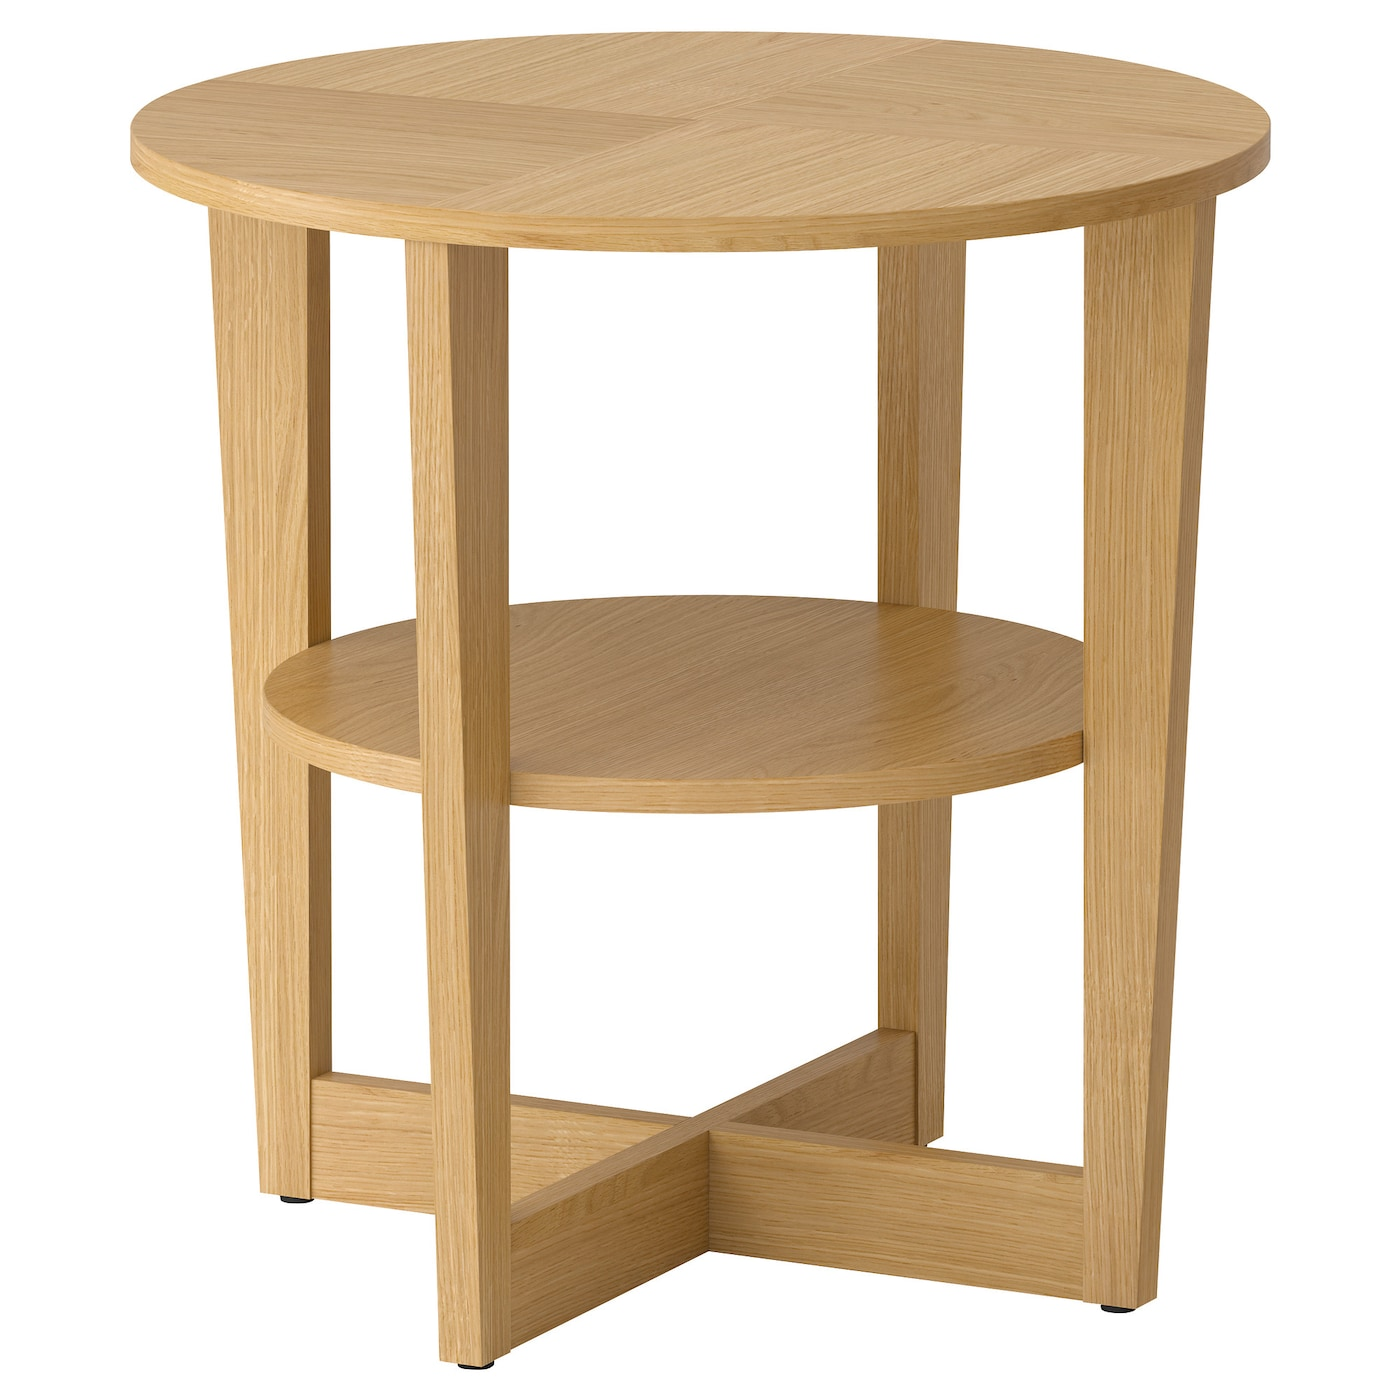 Vejmon side table oak veneer 60 cm ikea for Oak lamp table 60cm high